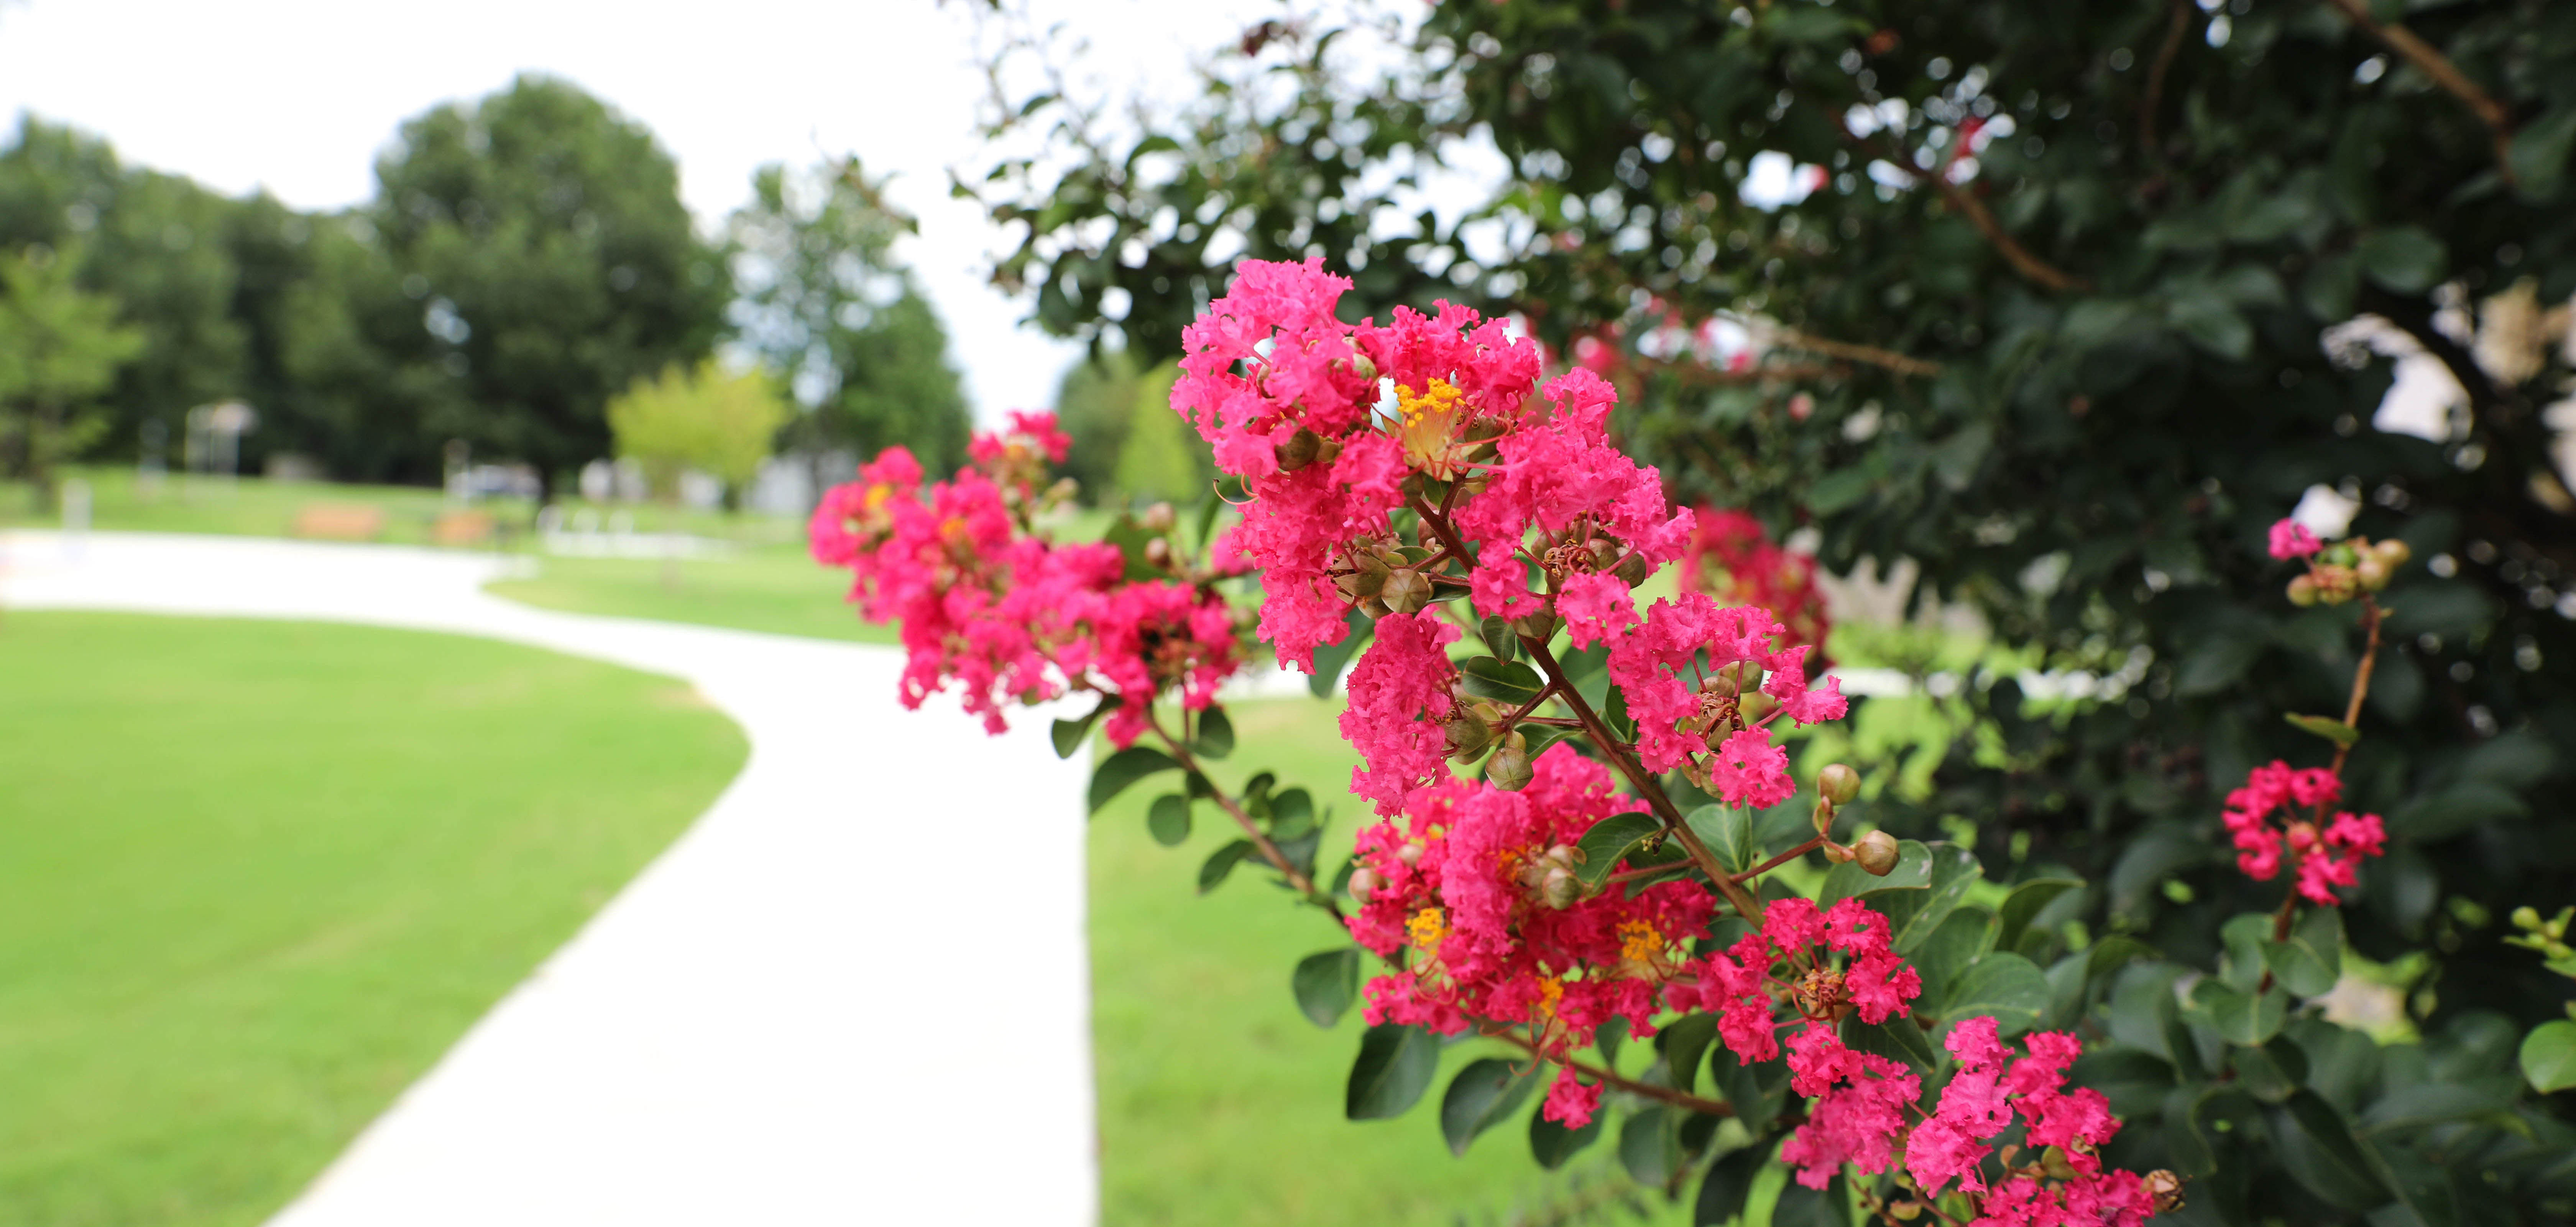 Bright pink flowers at Lacy Park in North Tulsa.